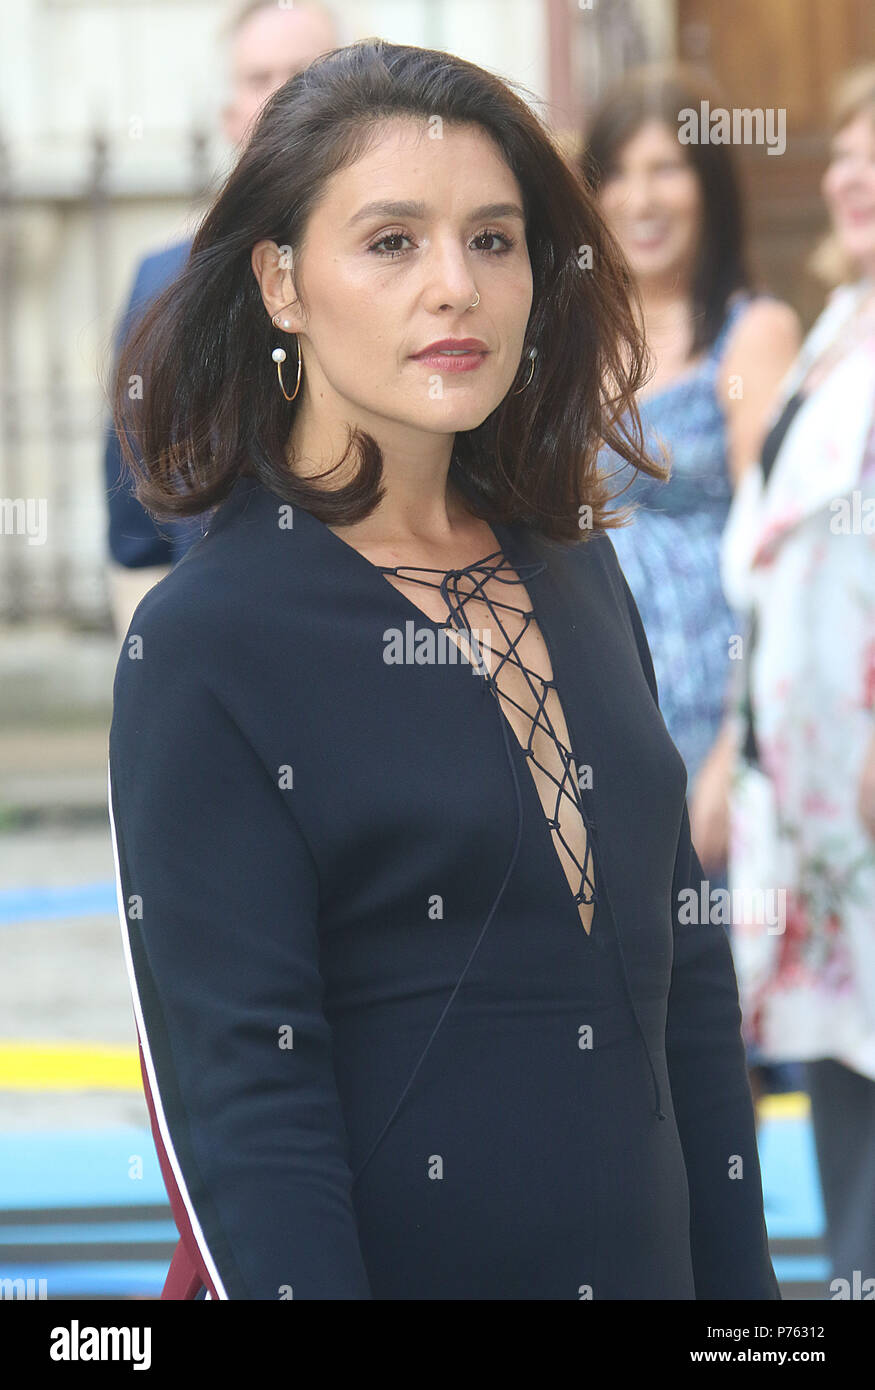 Jun 06, 2018 - Jessie Ware attending Royal Academy Of Arts 250th Summer Exhibition Preview Party at Burlington House in London, England, UK - Stock Image